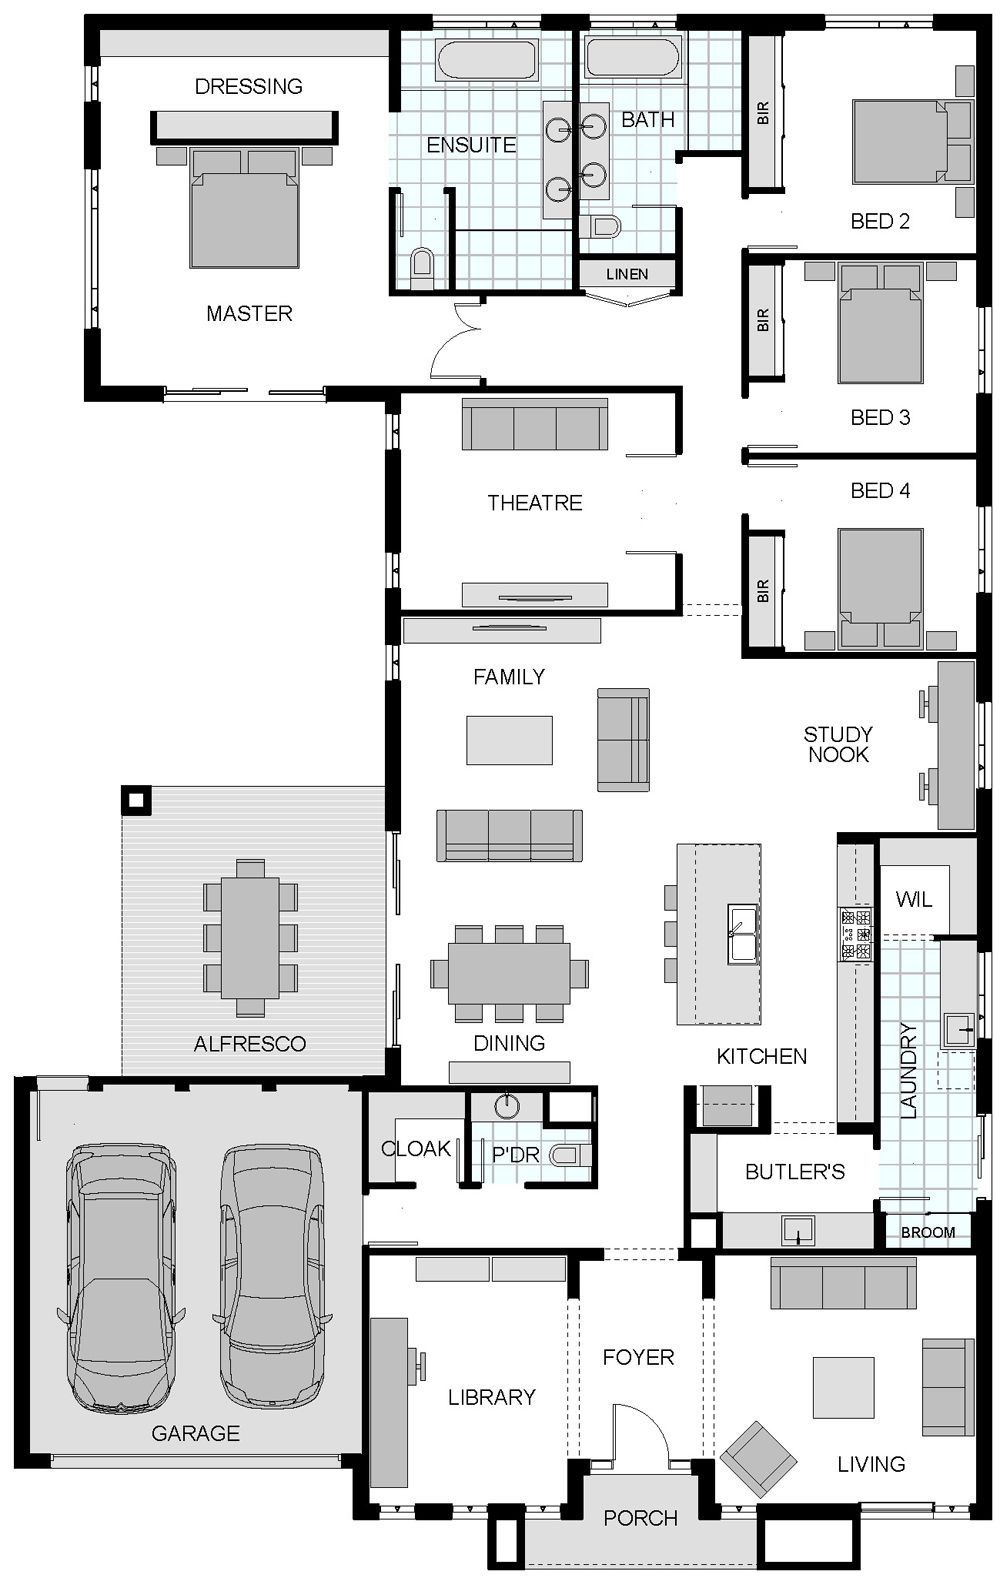 Pin de andrew pa en my favourite floor plans pinterest for Plantas arquitectonicas pdf